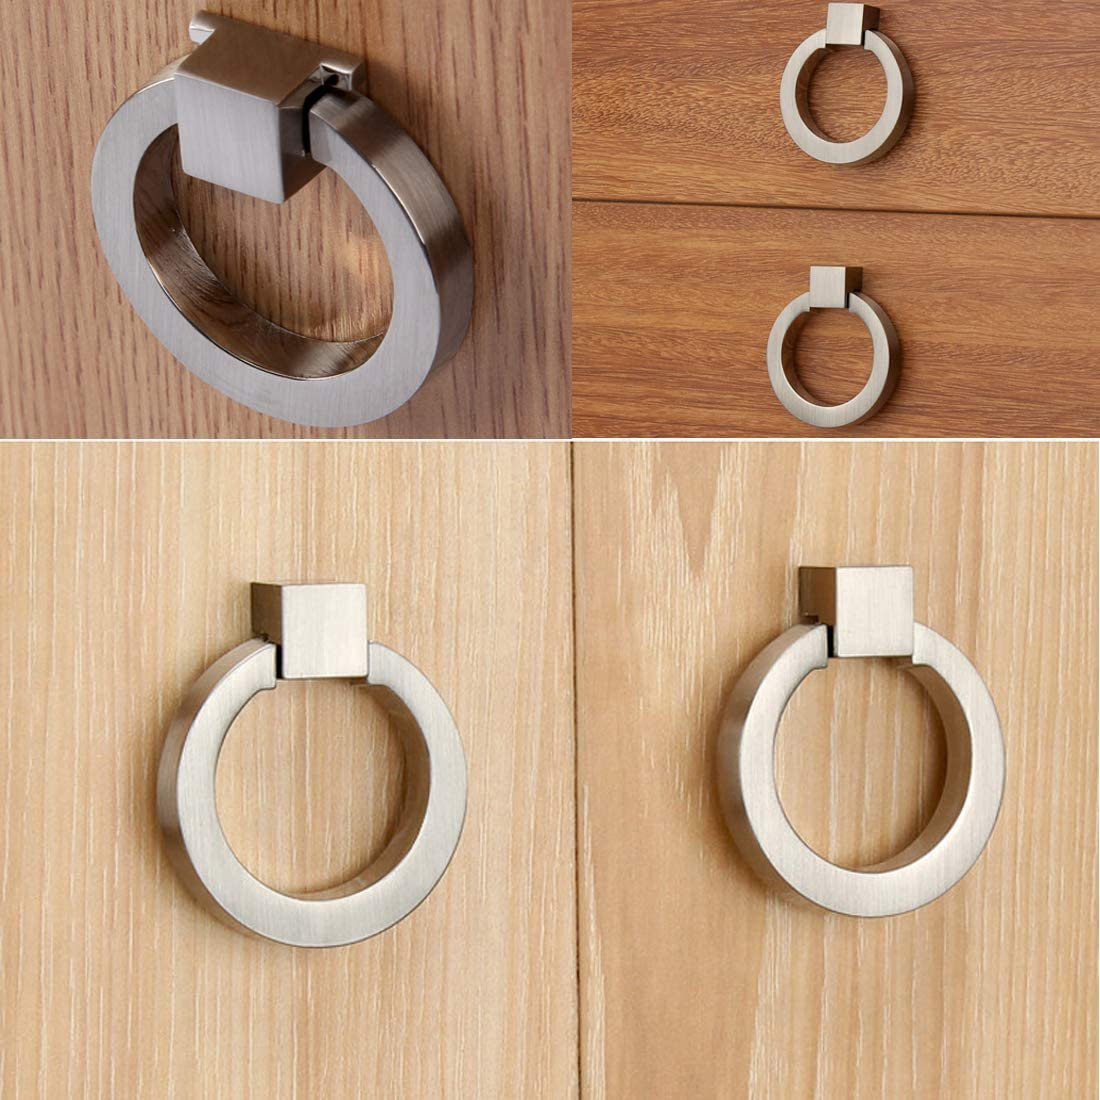 Myxekllo 4 Pcs Brushed Silver Cabinet Rings Round Ring Drawer Pull Knob for Cabinet Drawer Kitchen Bath Cabinets and Furniture Hardware-Single Hole